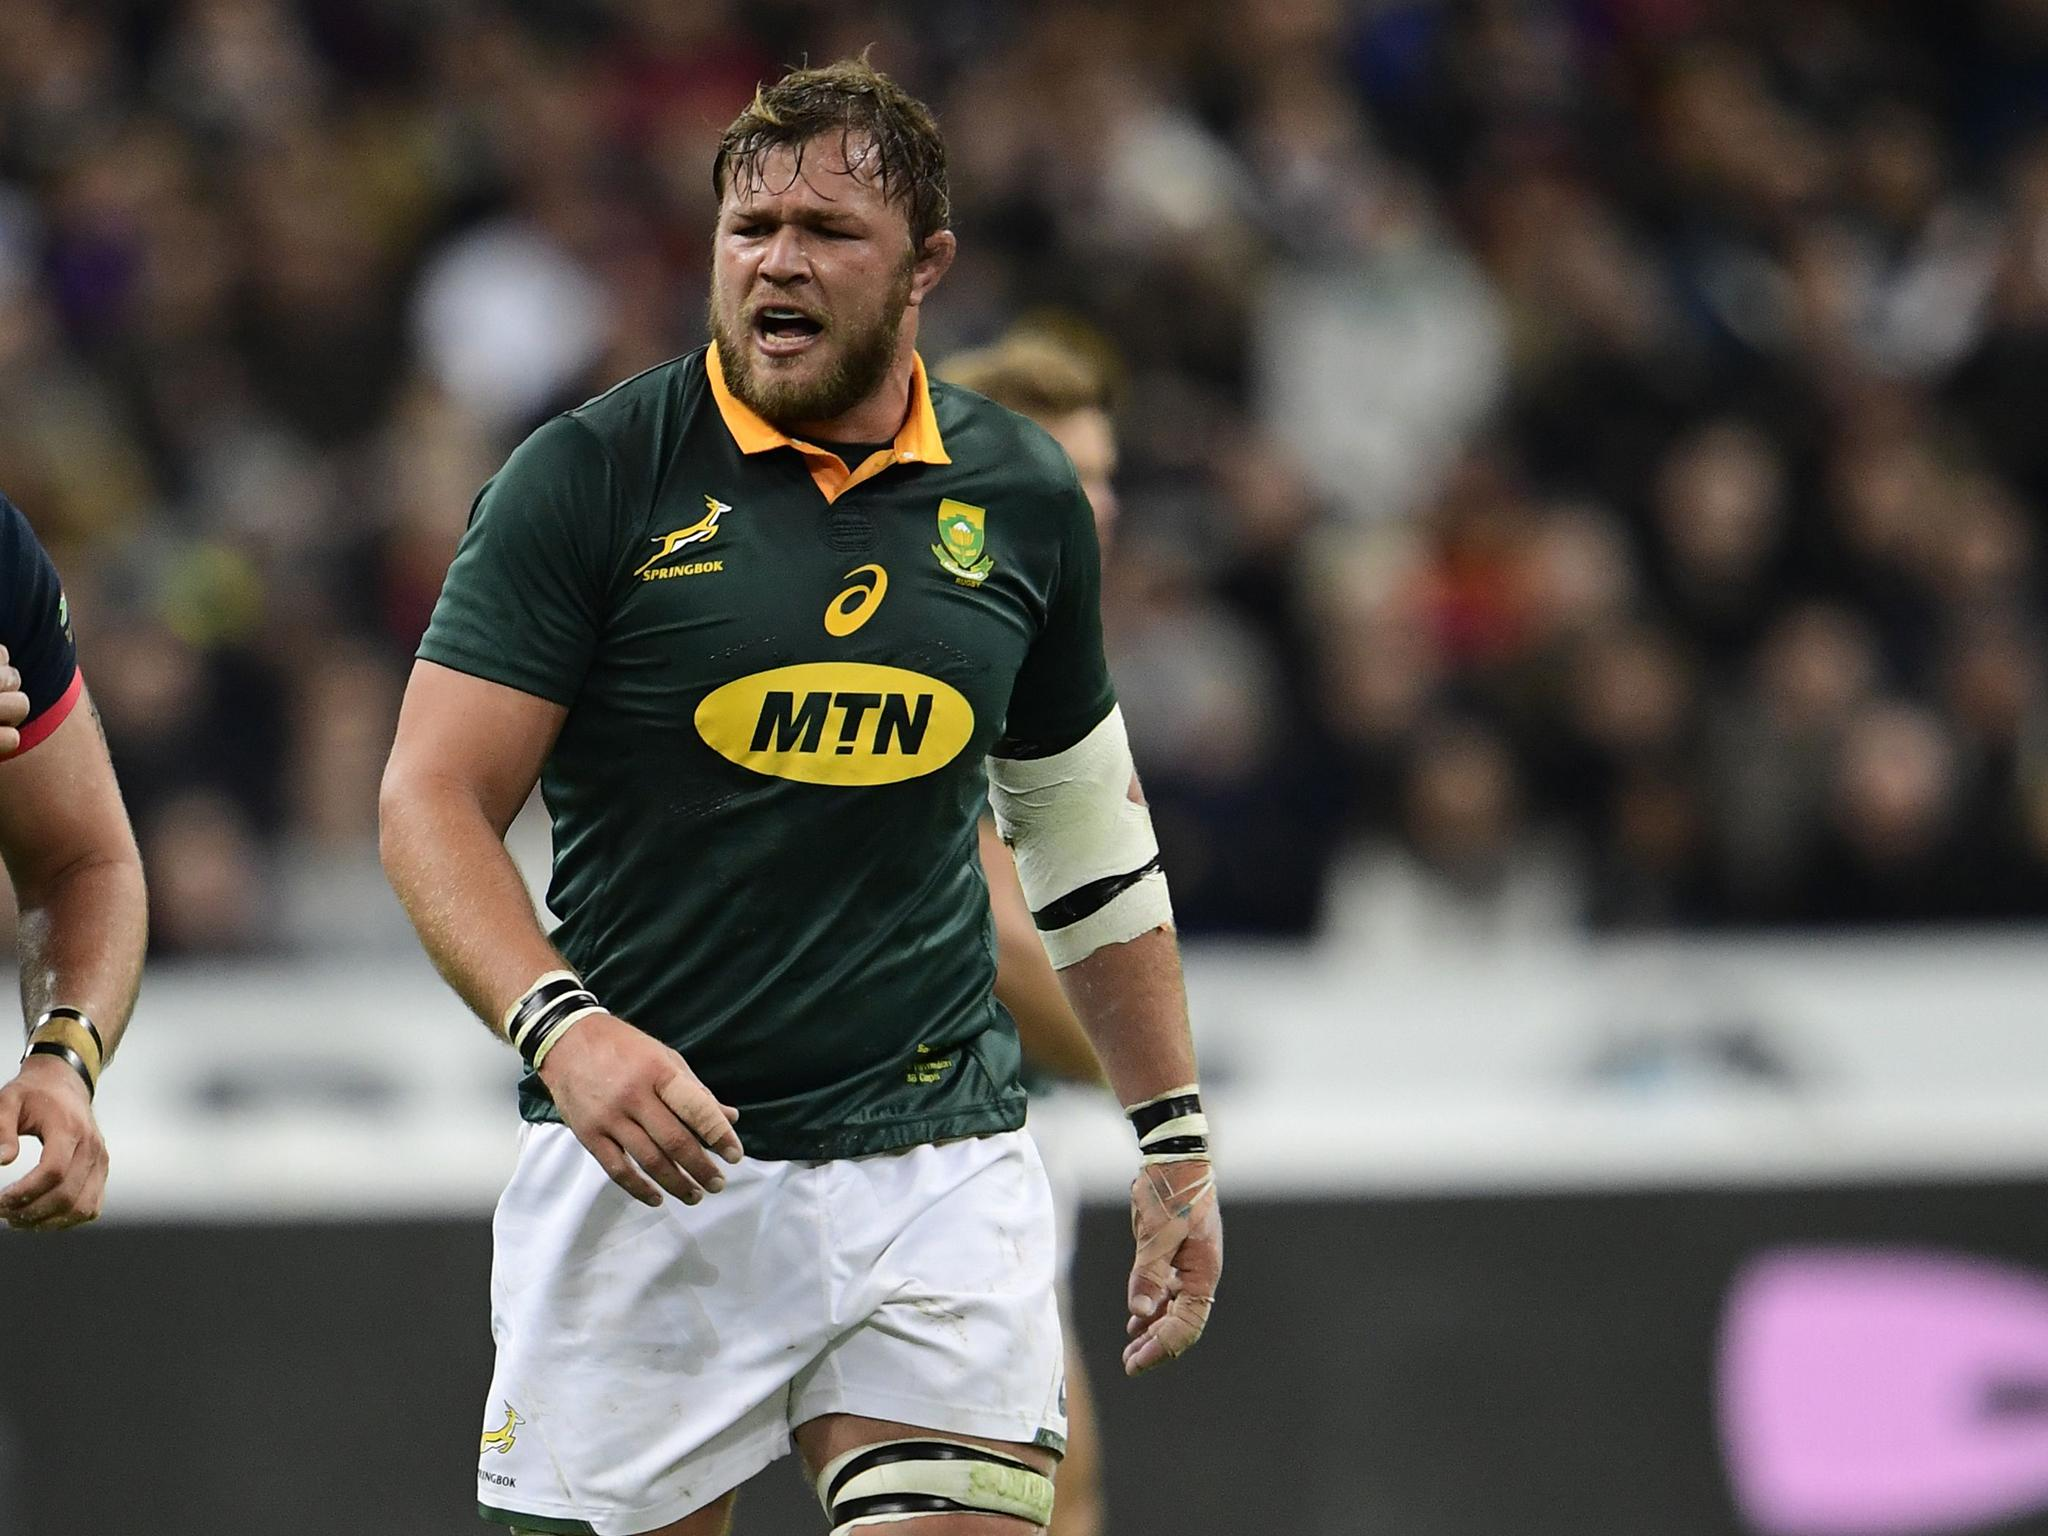 Rugby World Cup 2019: South Africa name unchanged team for opening game against New Zealand